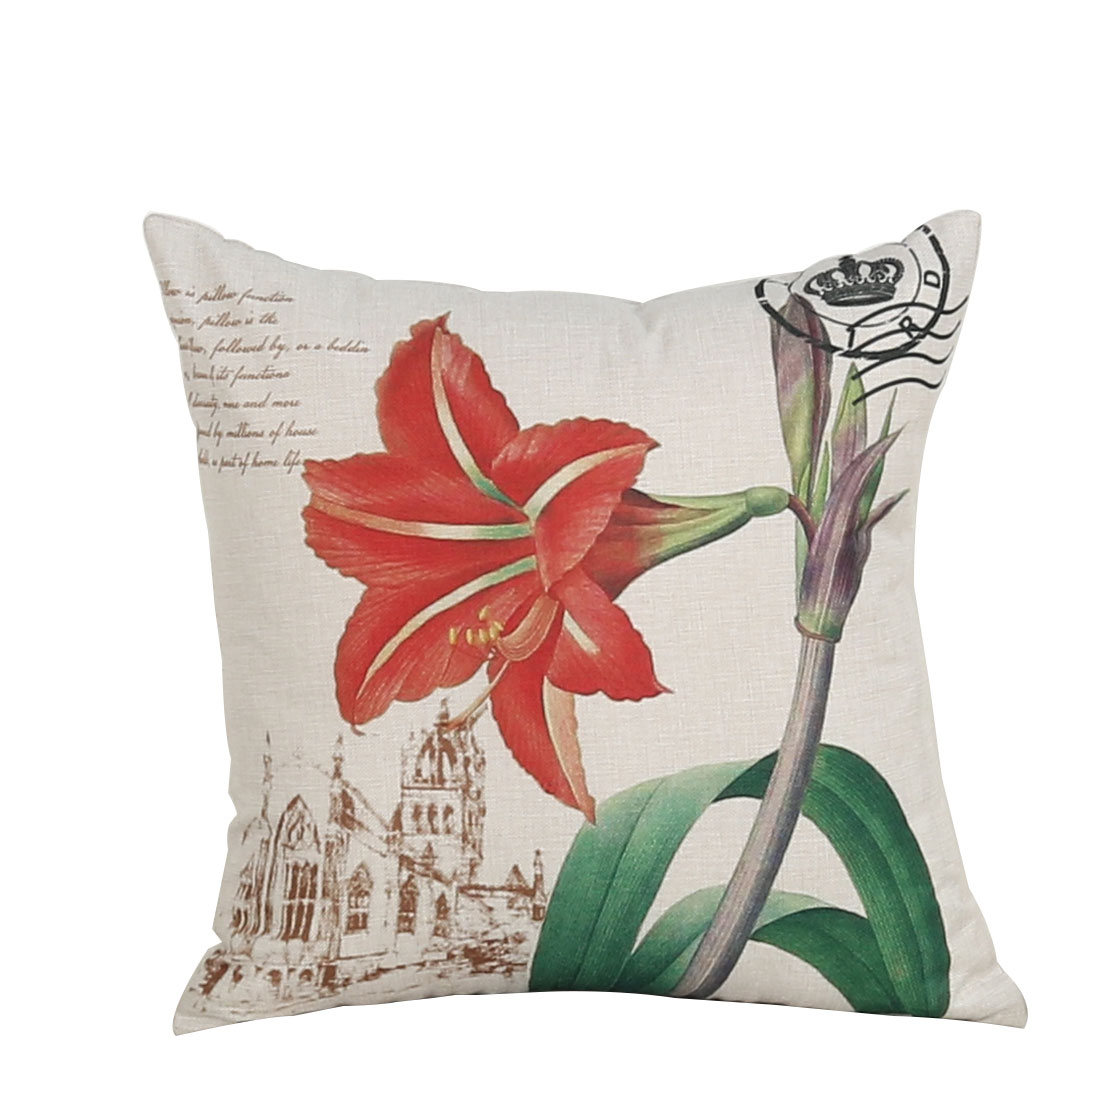 Sofa Couch Cotton Linen Barbadoslily Pattern Waist Throw Cushion Cover Pillow Case